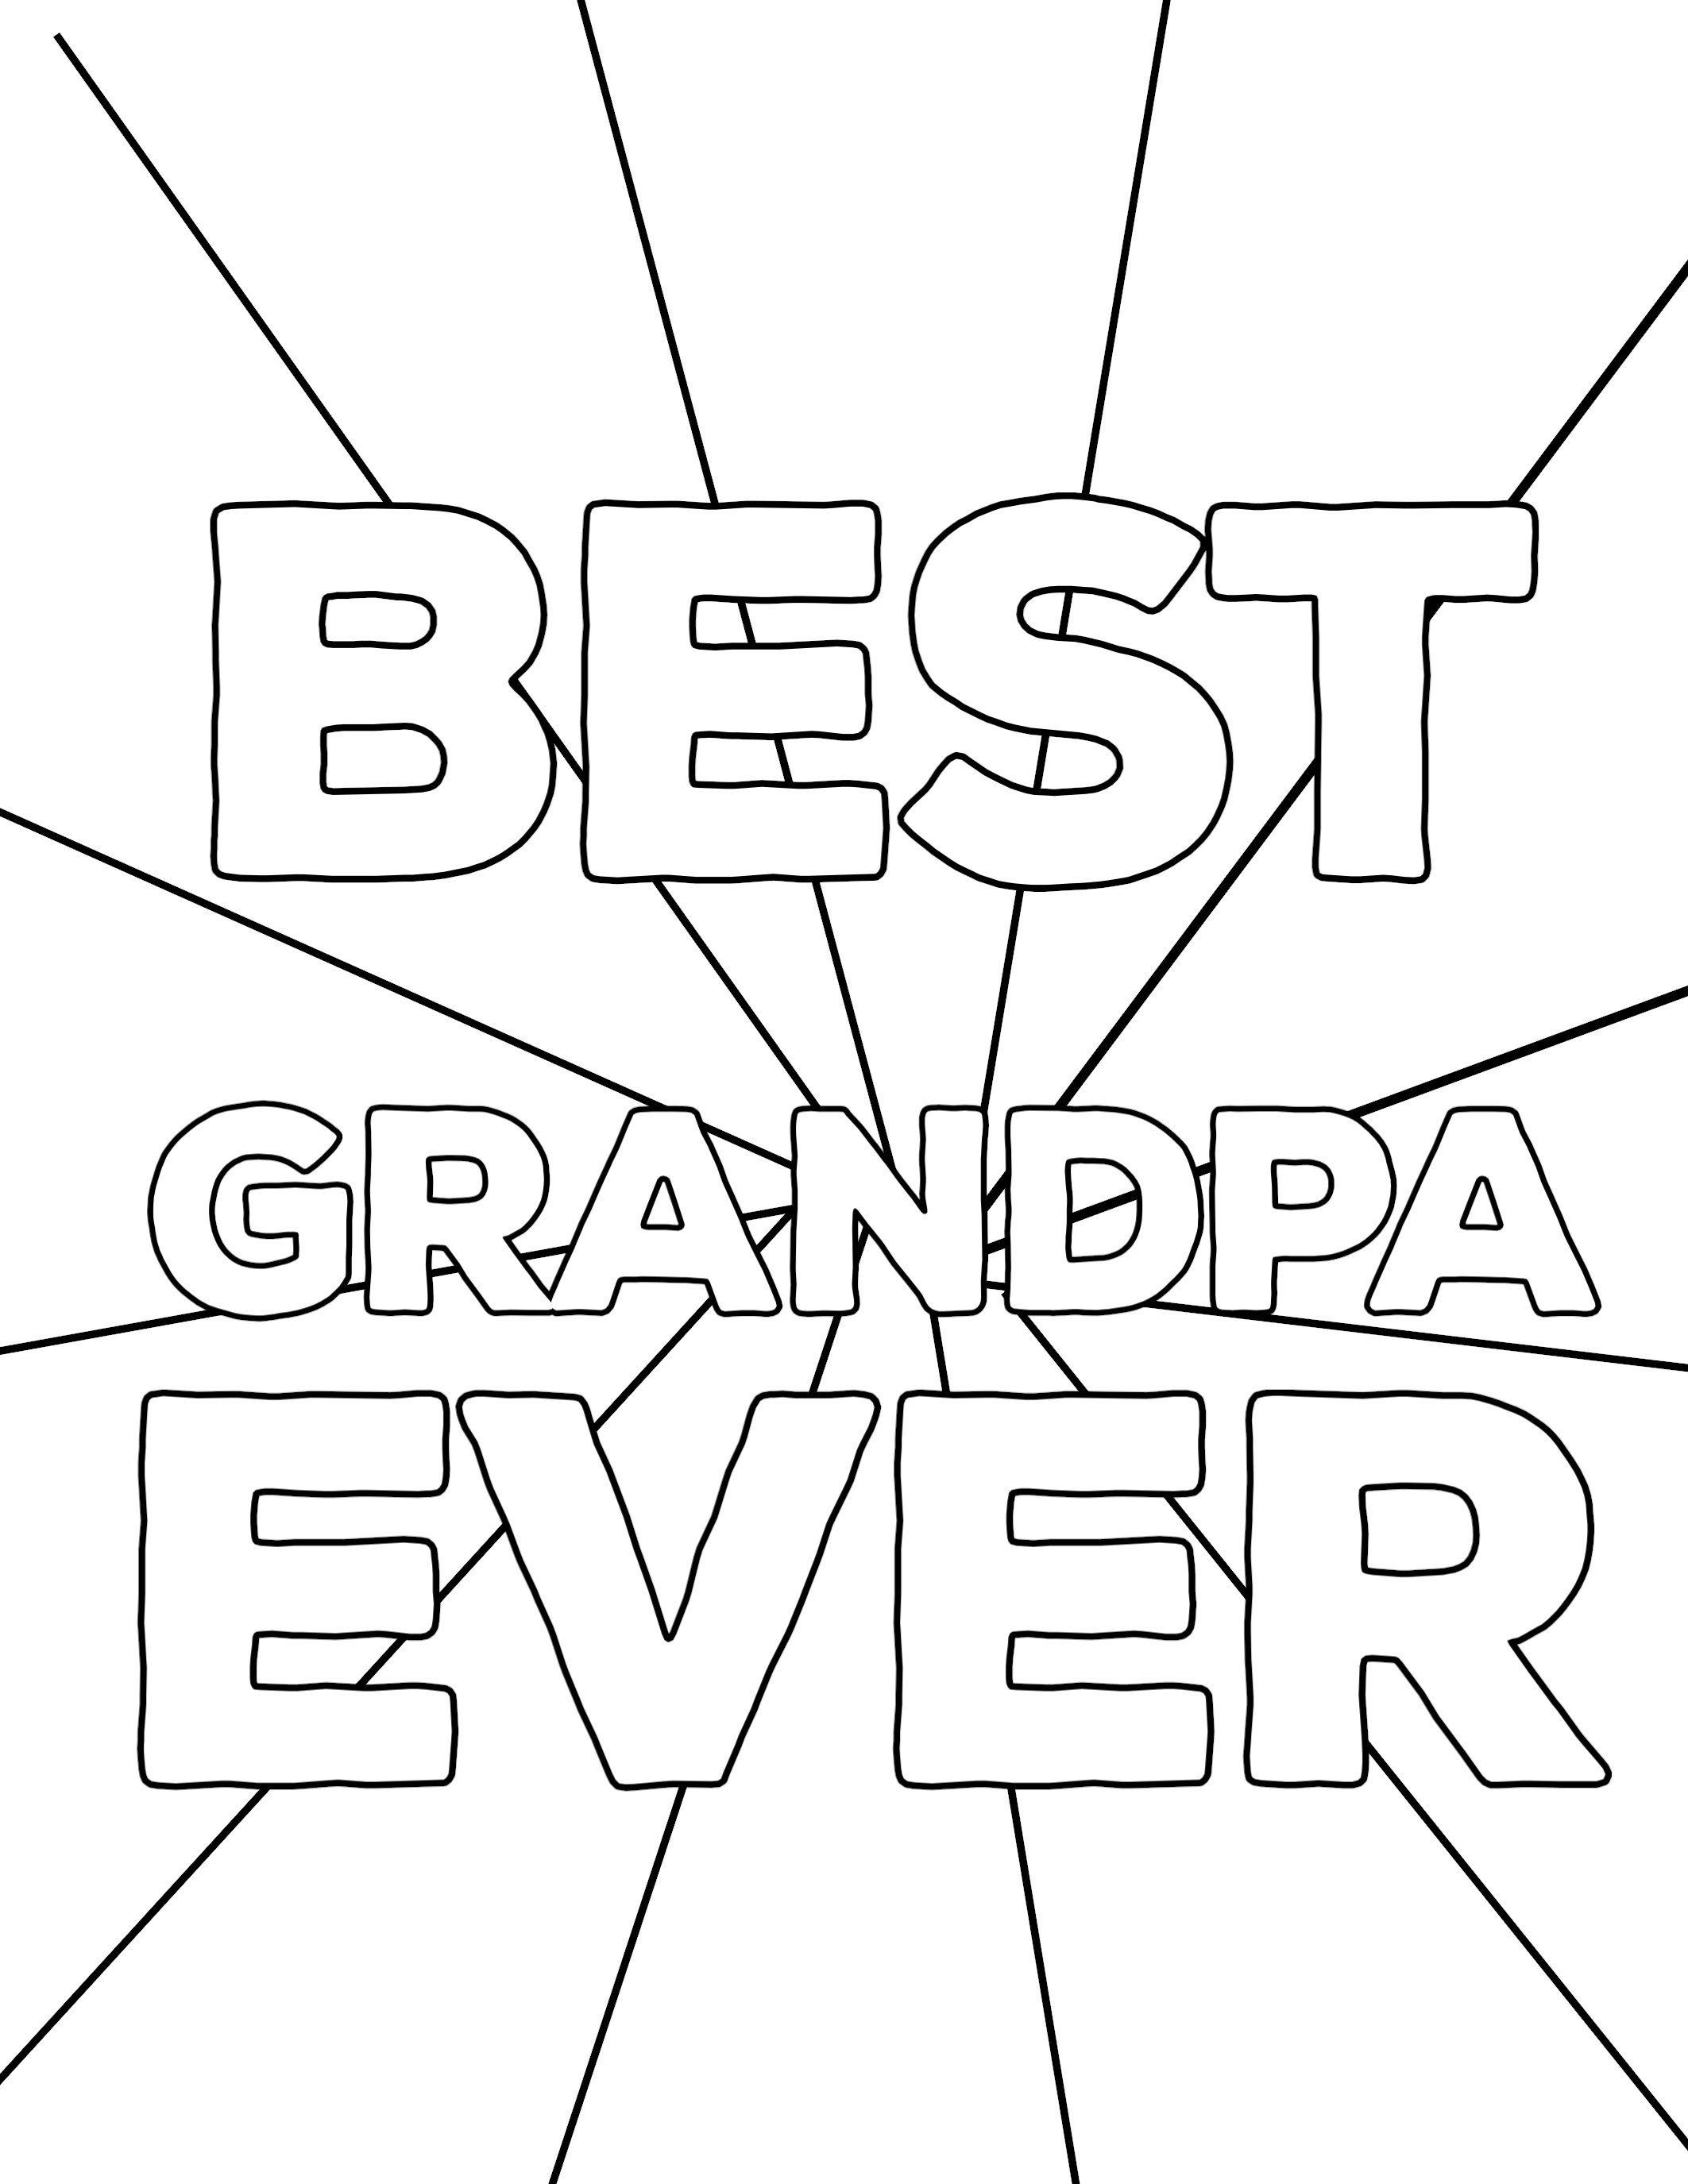 Grandparents Day Coloring Pages Unique Coloring